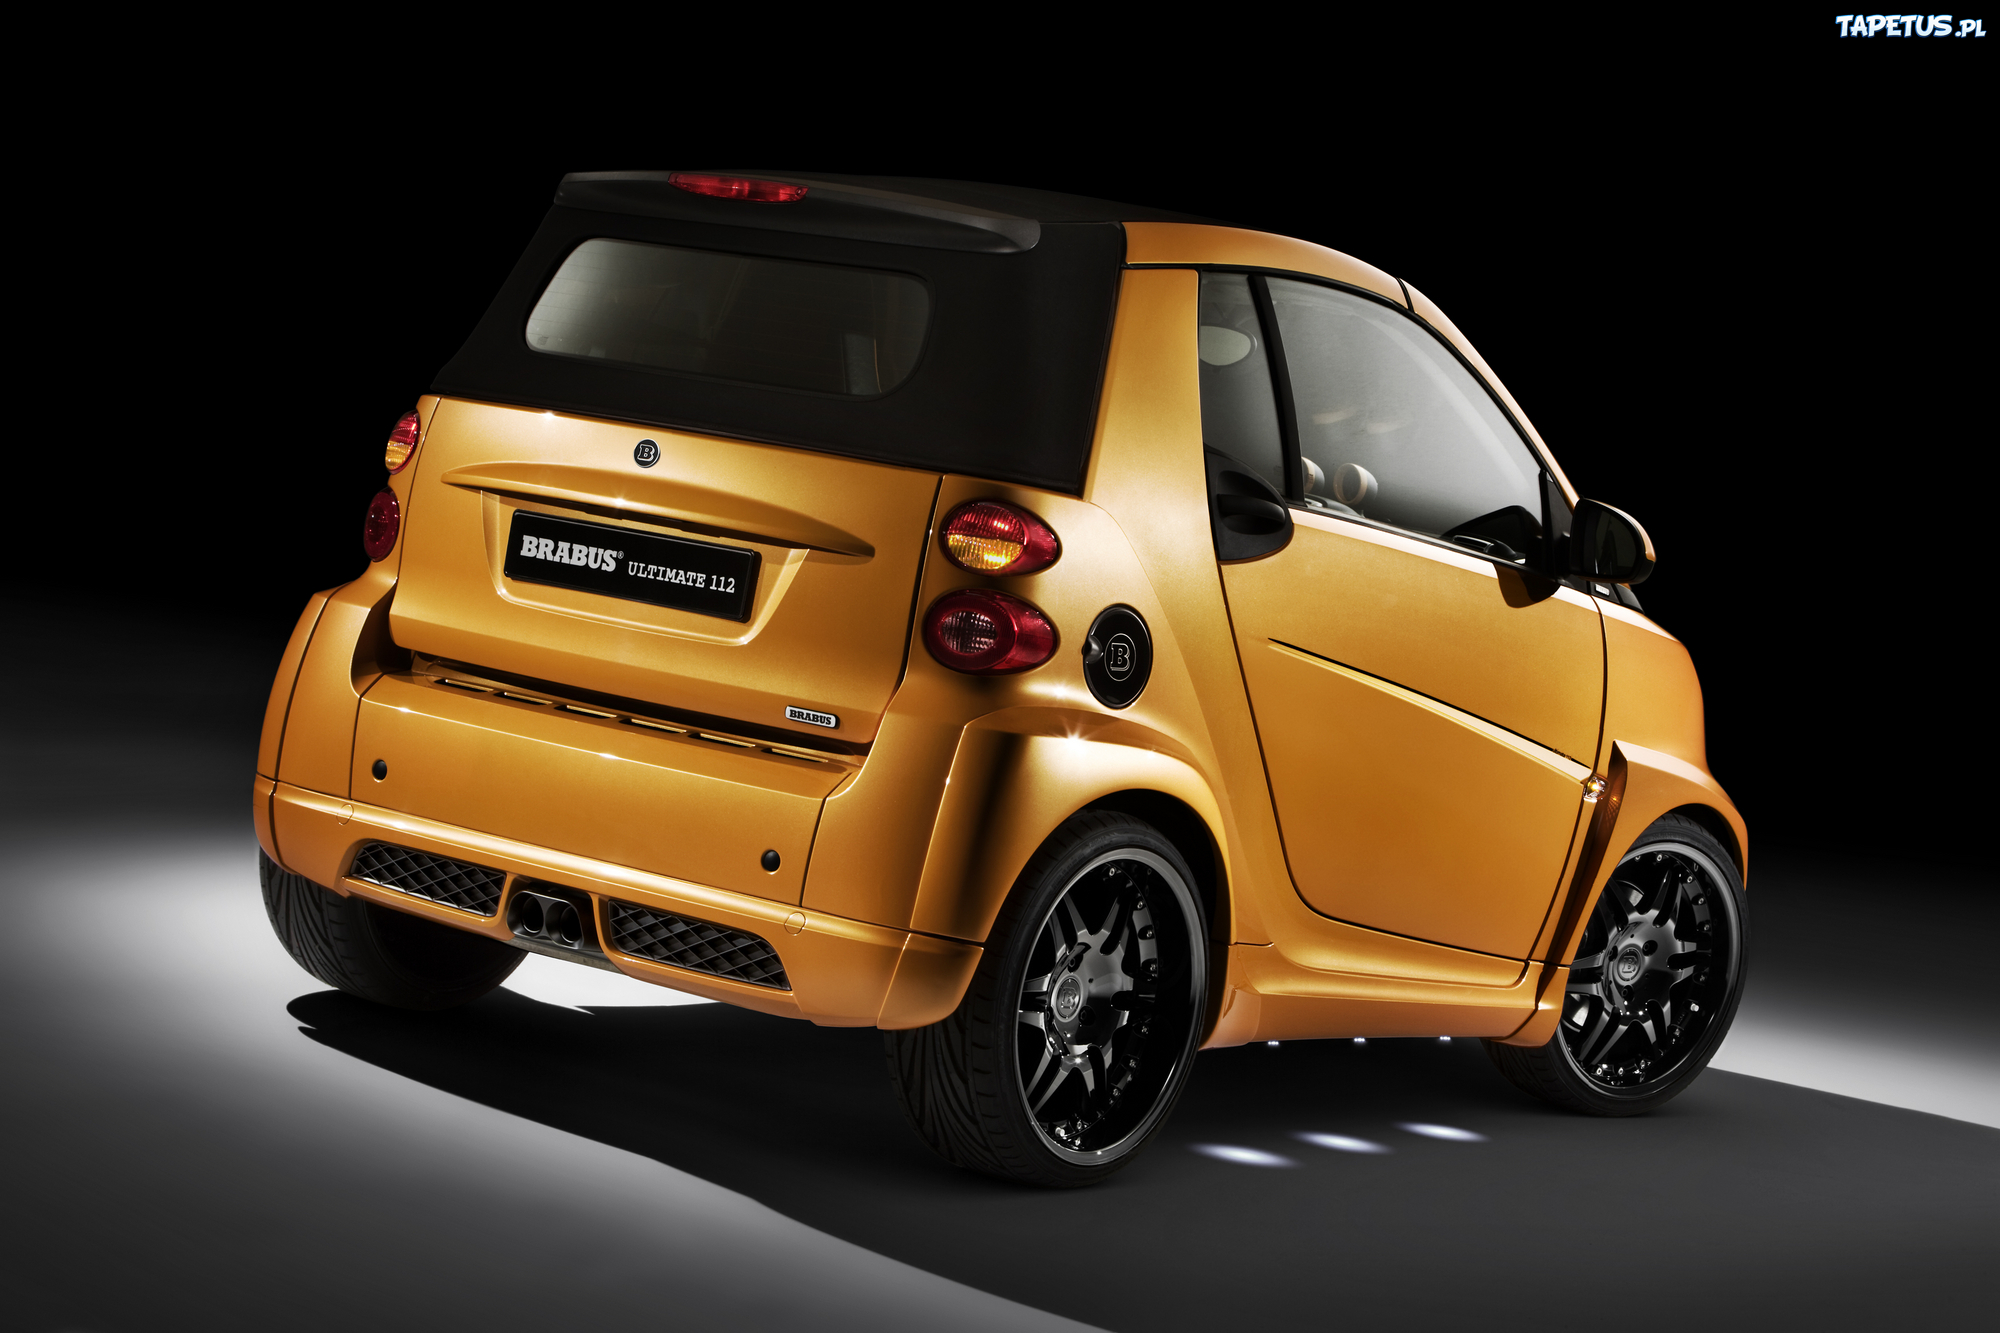 Smart Brabus Ultimate 112, 2007